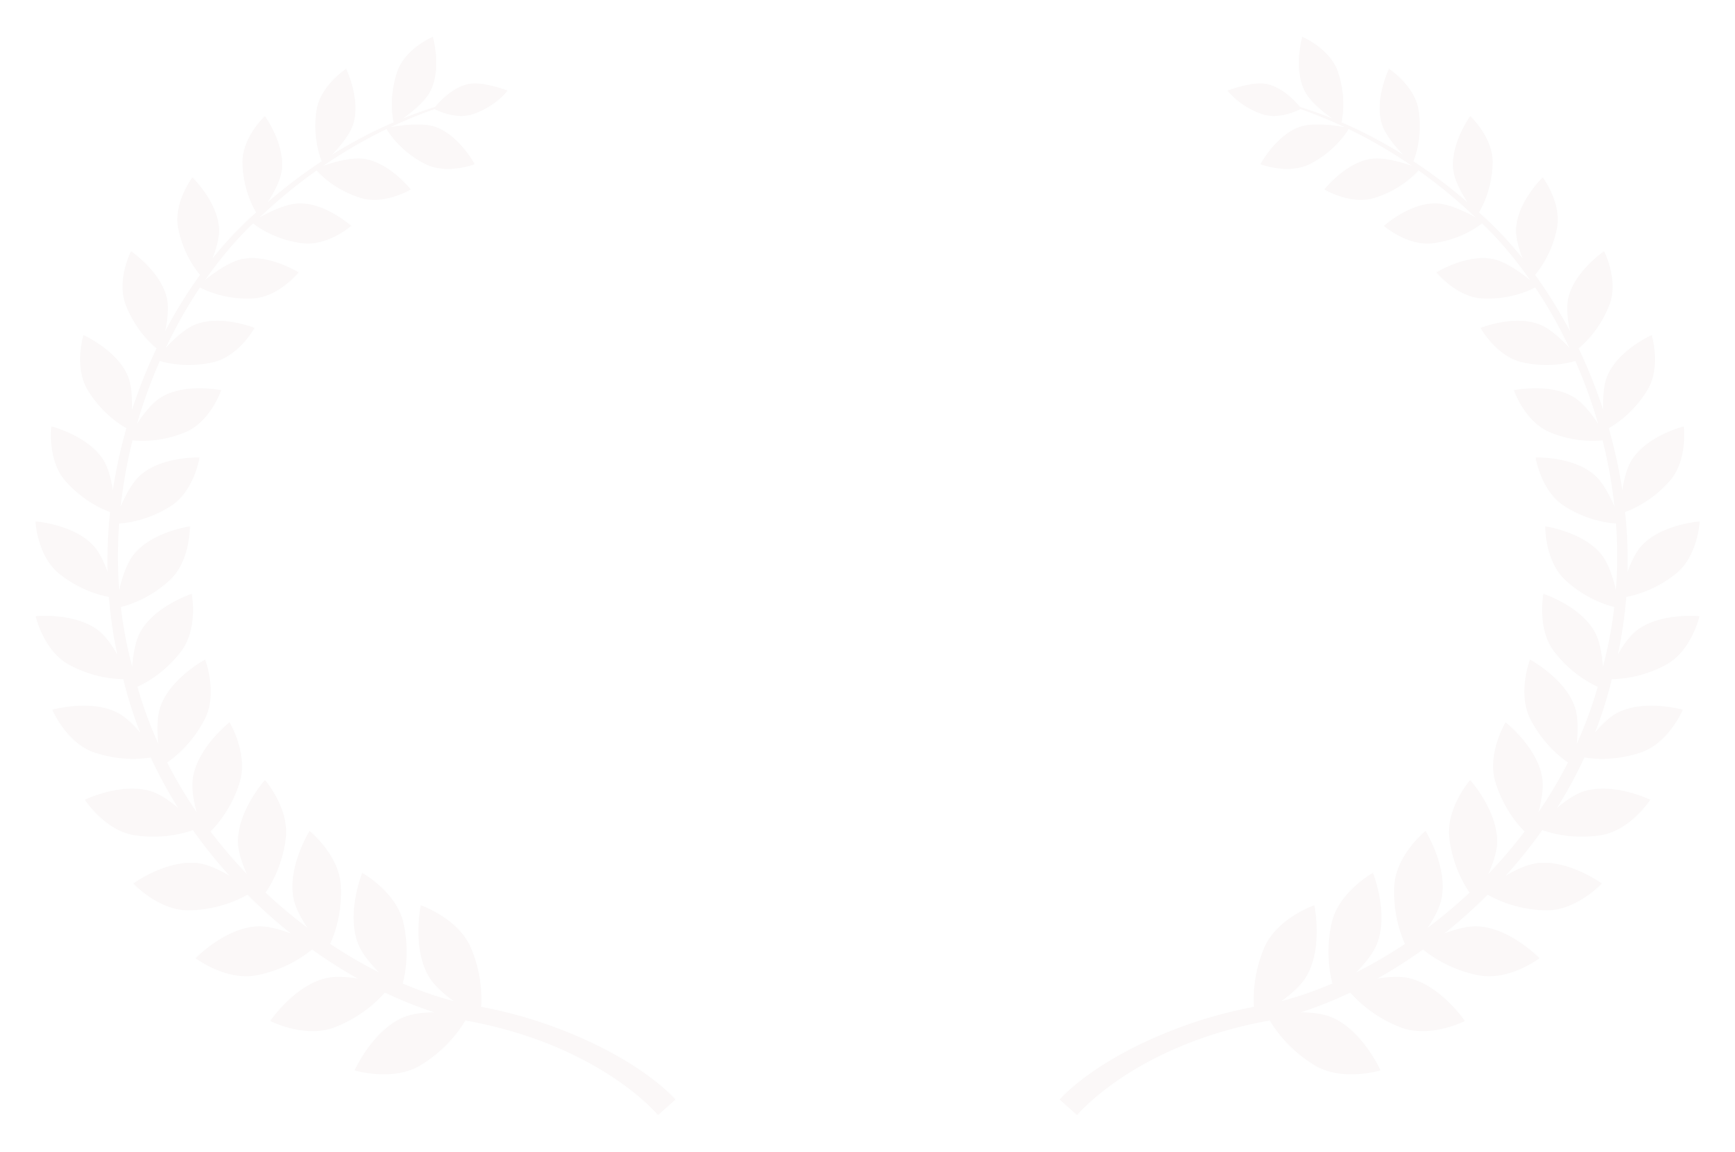 WHITE _ STARS HOLLYWOOD FESTIVAL - 2018 copy.png